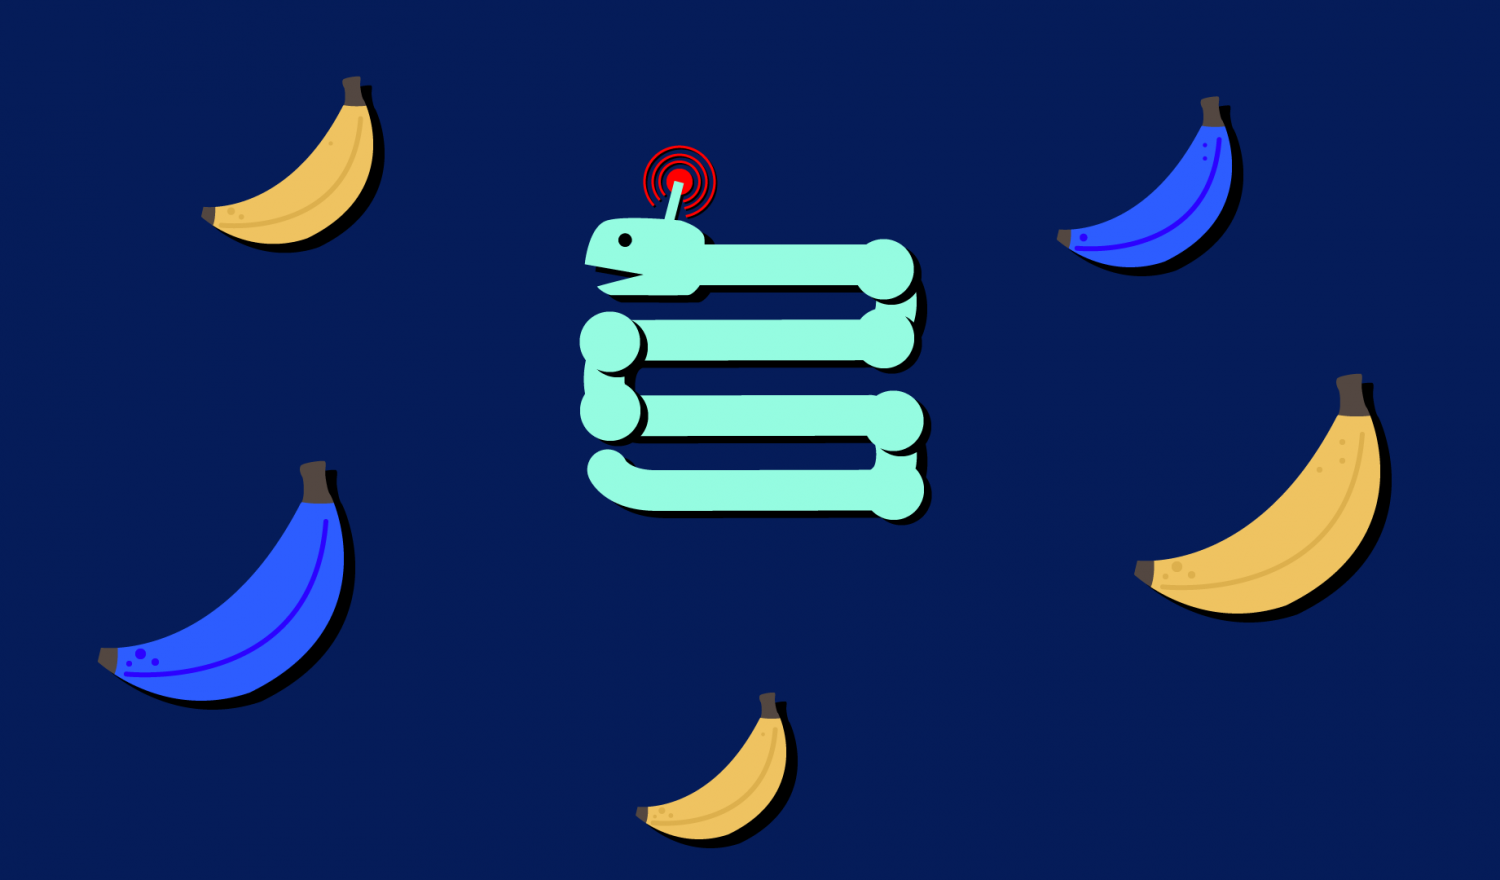 A Snake-like robot surrounded by yellow and purple bananas for inverse reinforcement learning